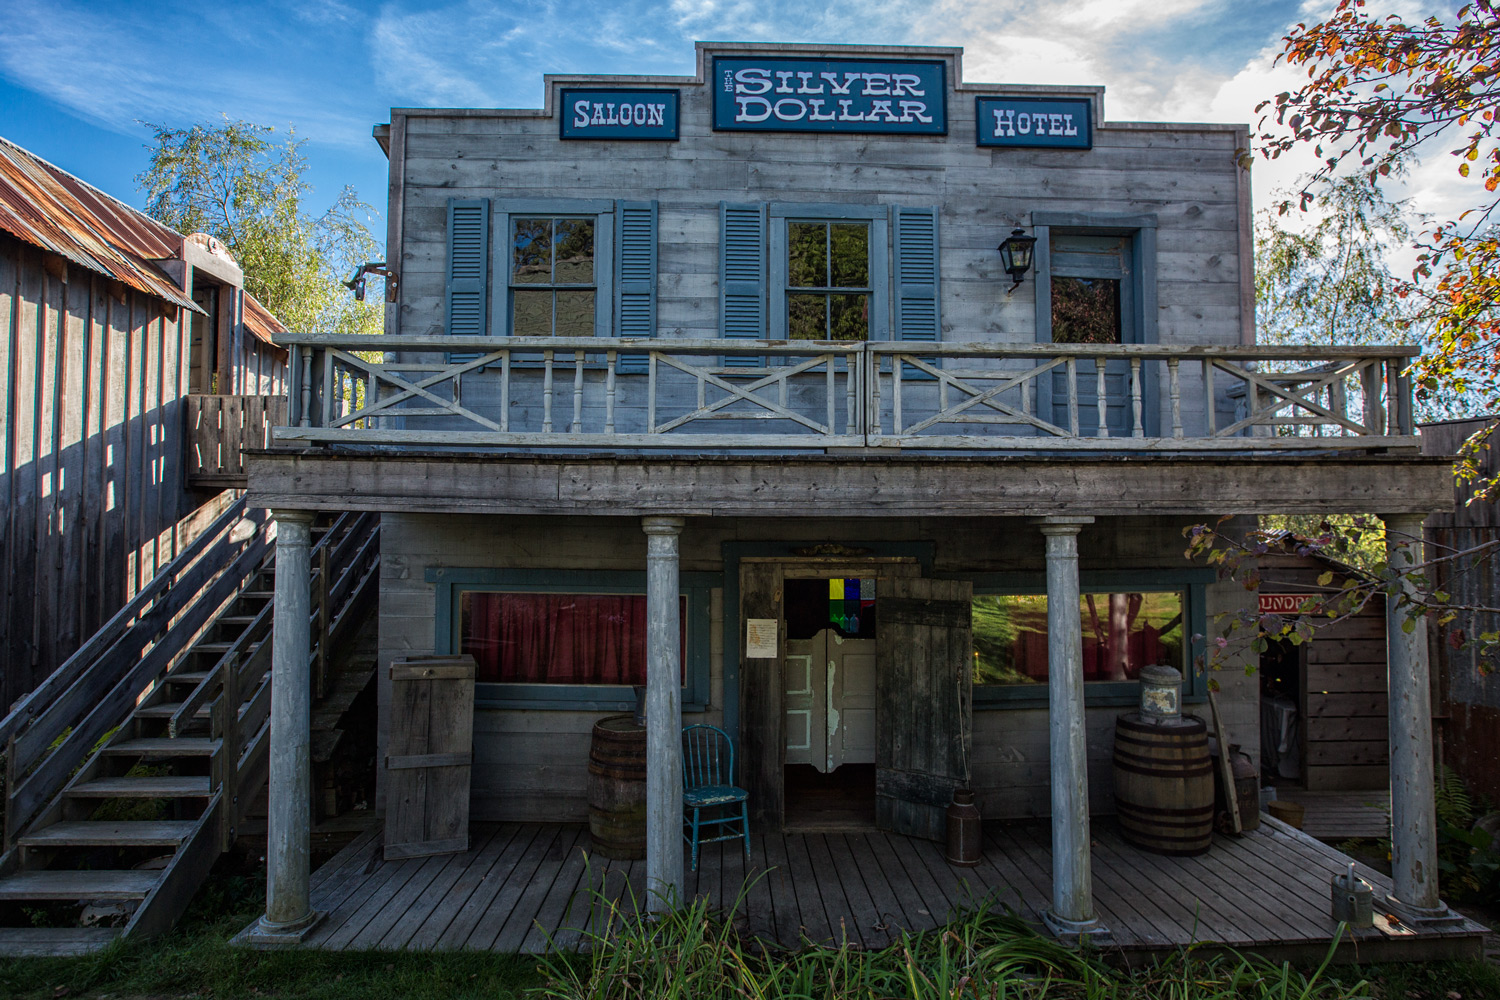 old saloon hotel - Using HDR Photography to Your Advantage